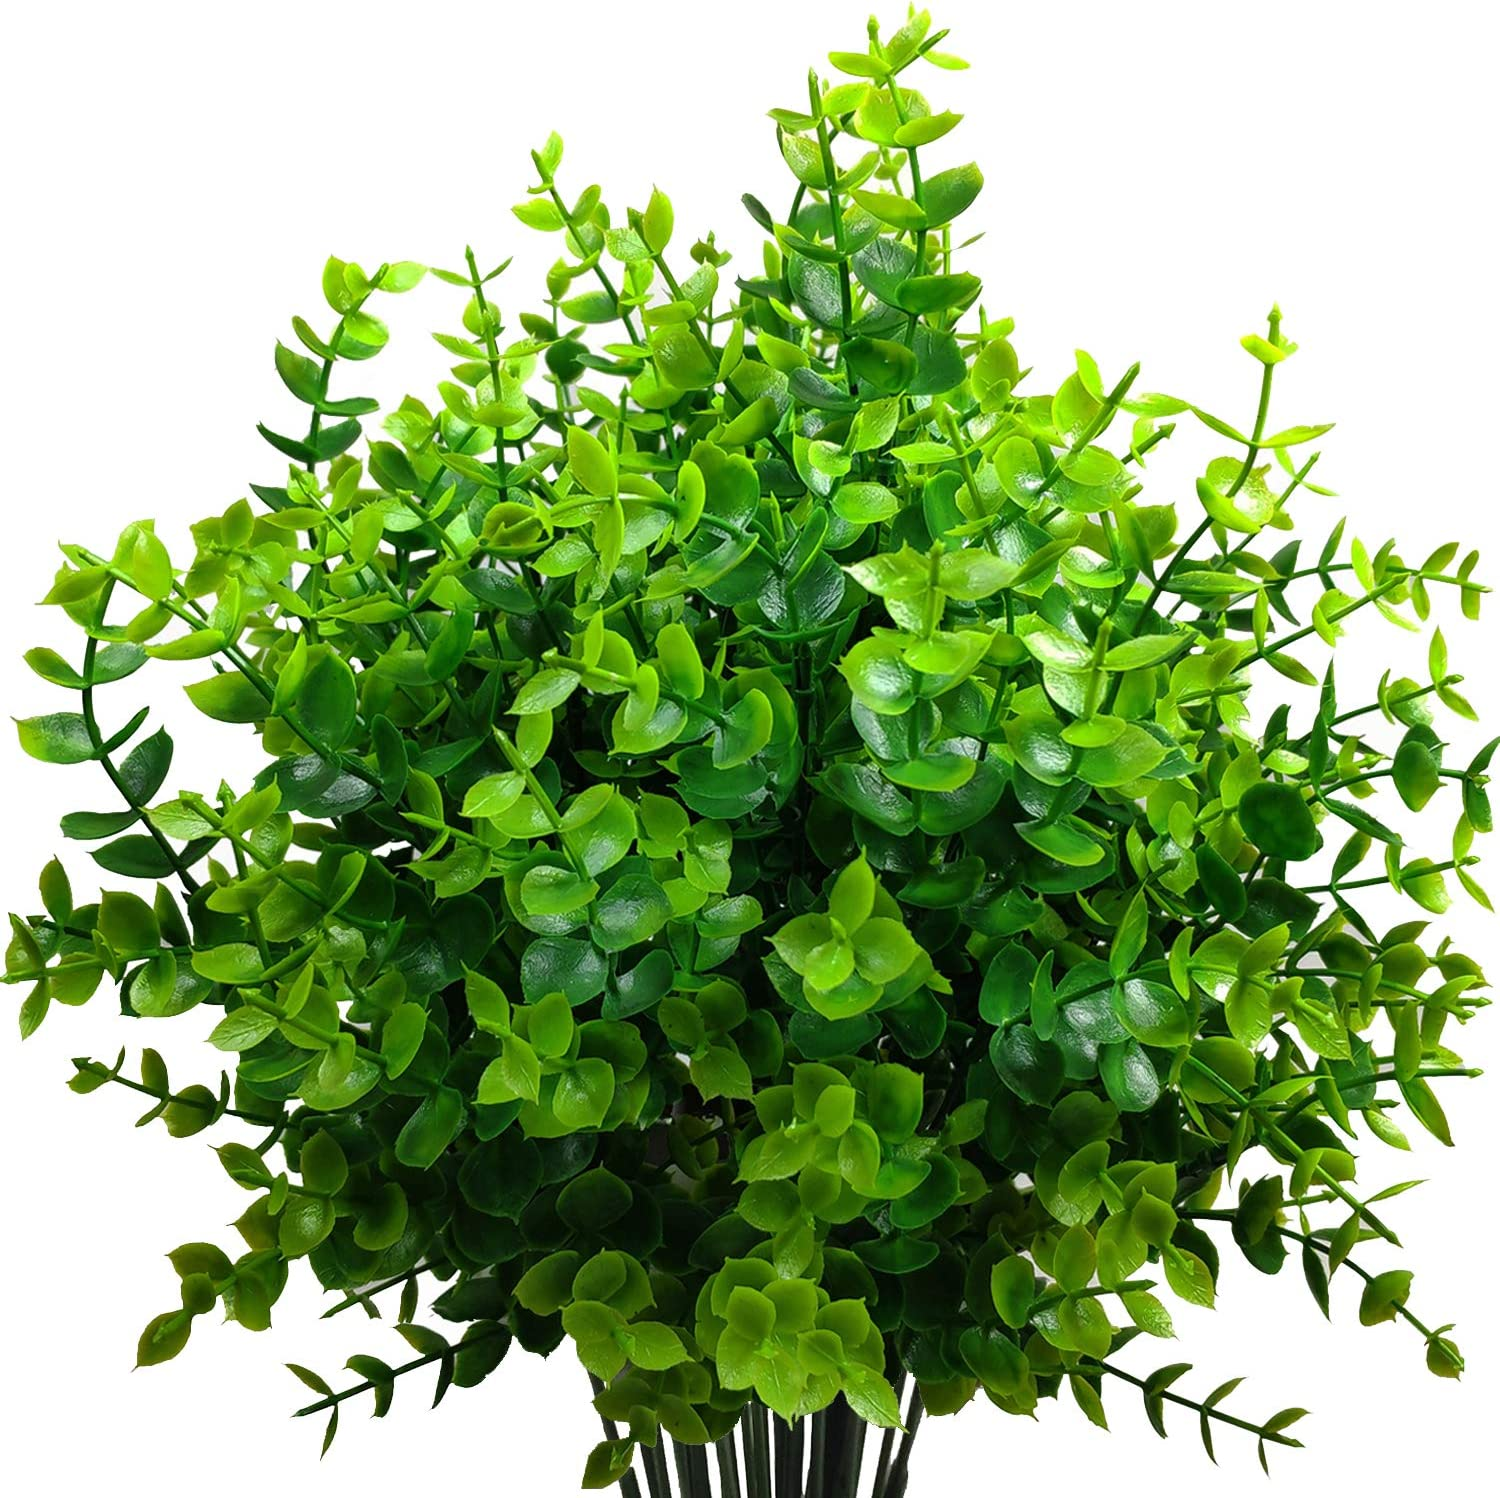 MIXCUTE Artificial Boxwood (Pack of 6), Fake Plants Faux Artificial Greenery Boxwood Stems for Wedding, Home, Farmhouse, Garden, Office, Hotel, Indoor, Outdoor Decor